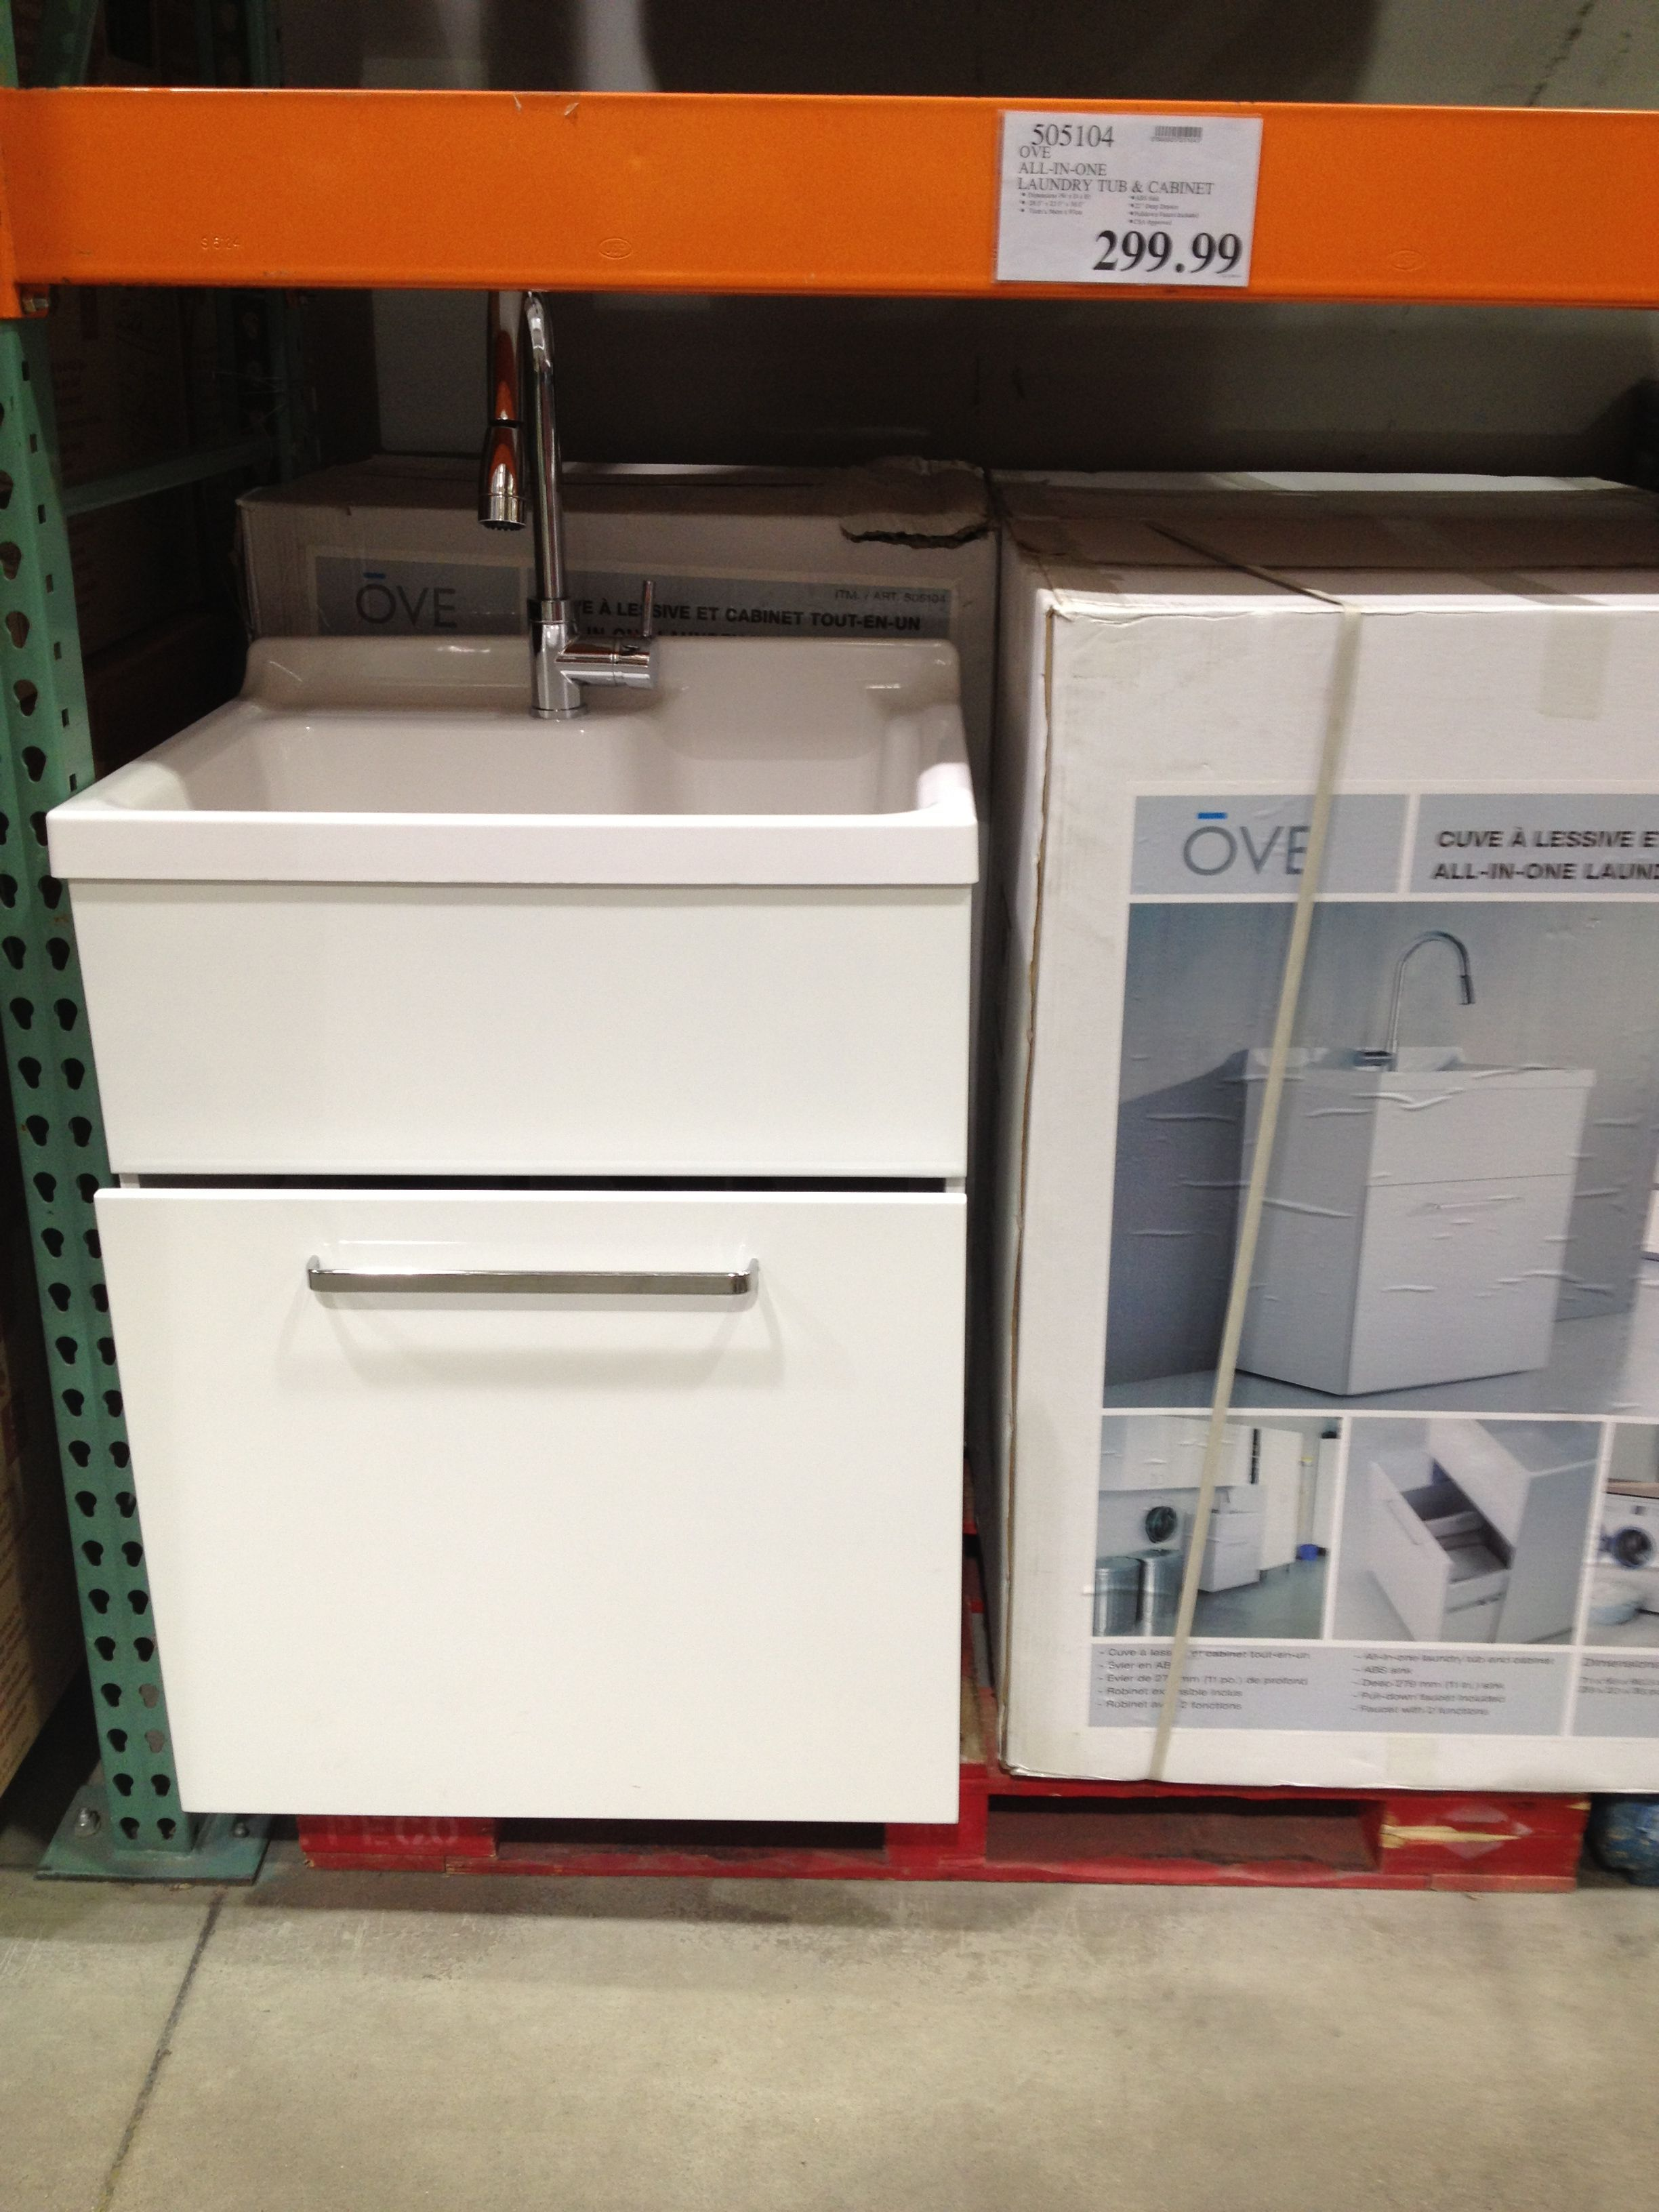 Delicieux COSTCO $299 Utility Sink For Garage Bathroom. Not First Choice, But Could  Work!